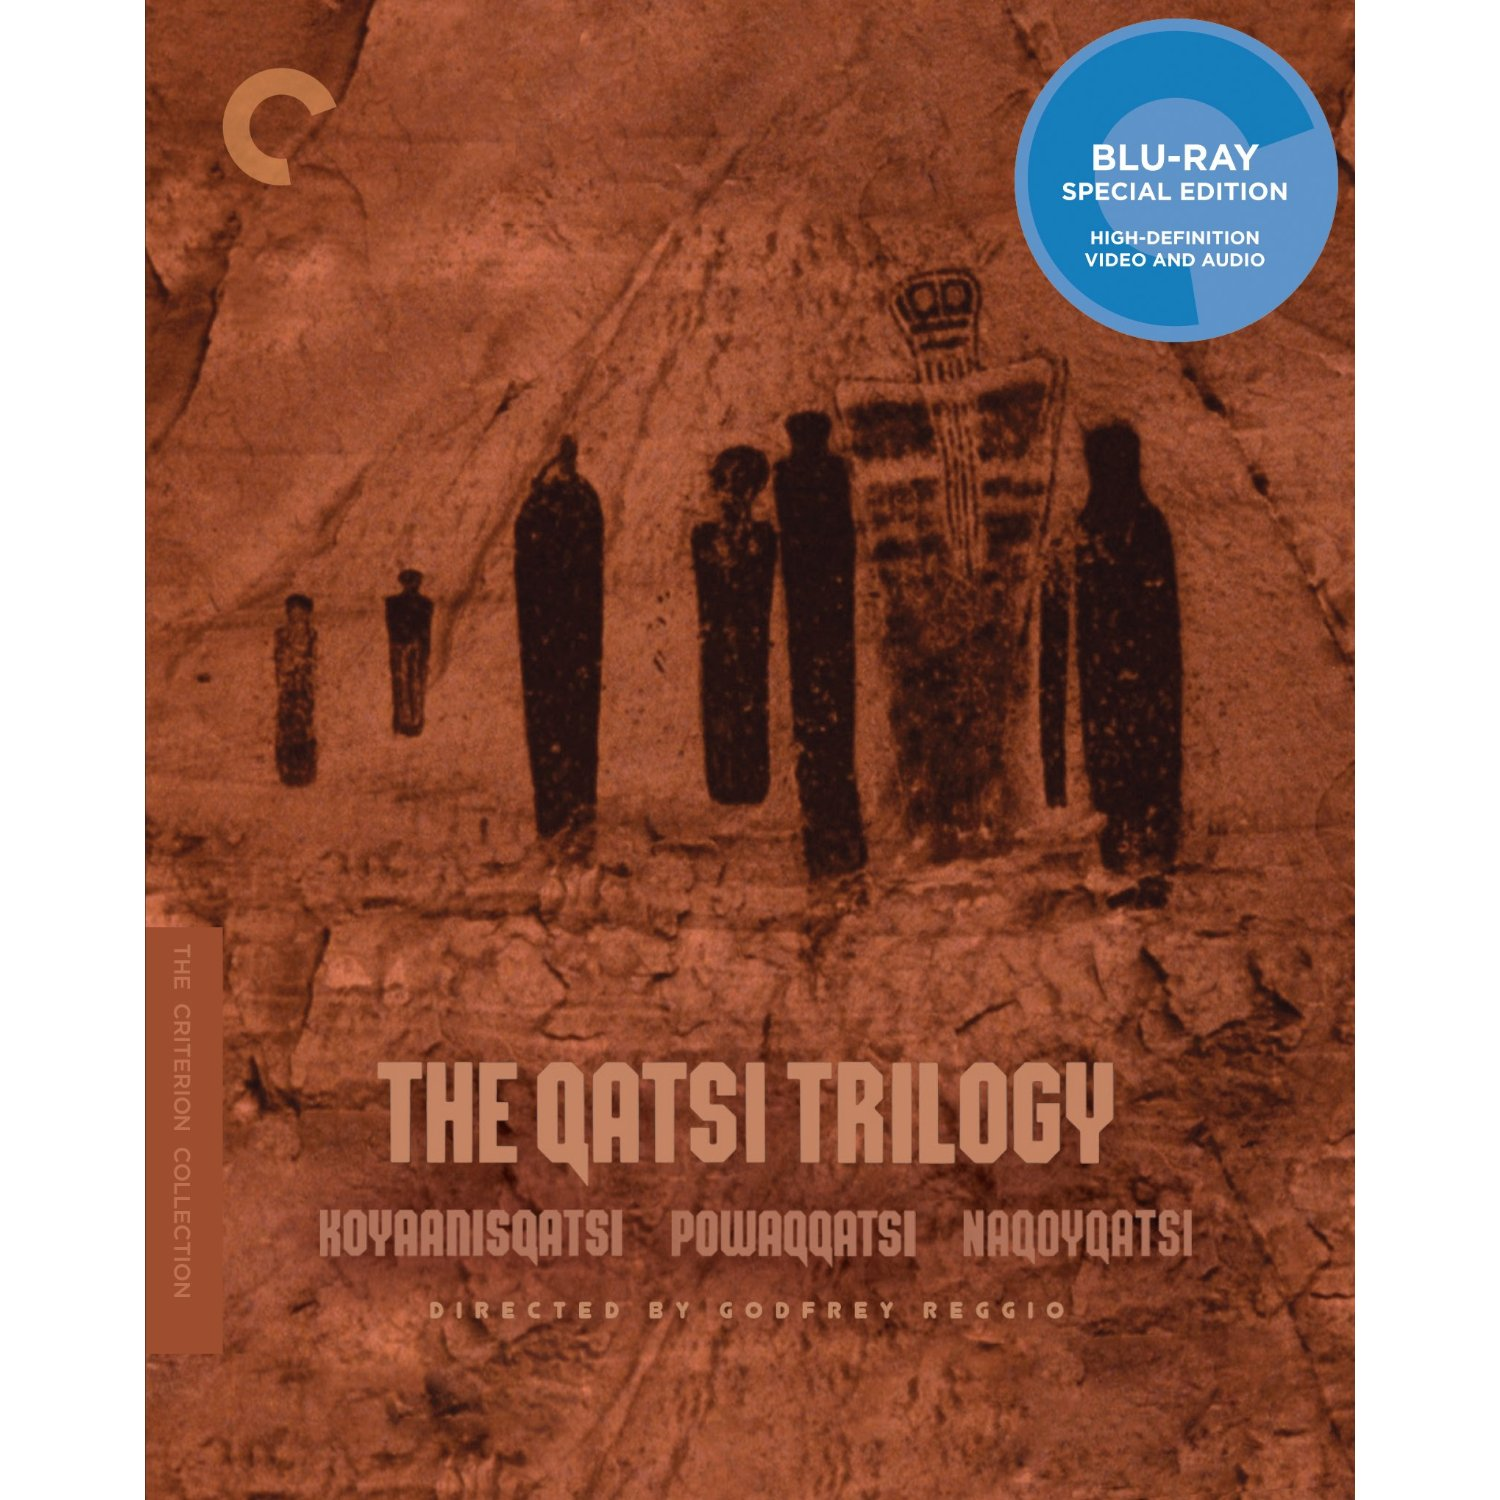 THE QATSI TRILOGY